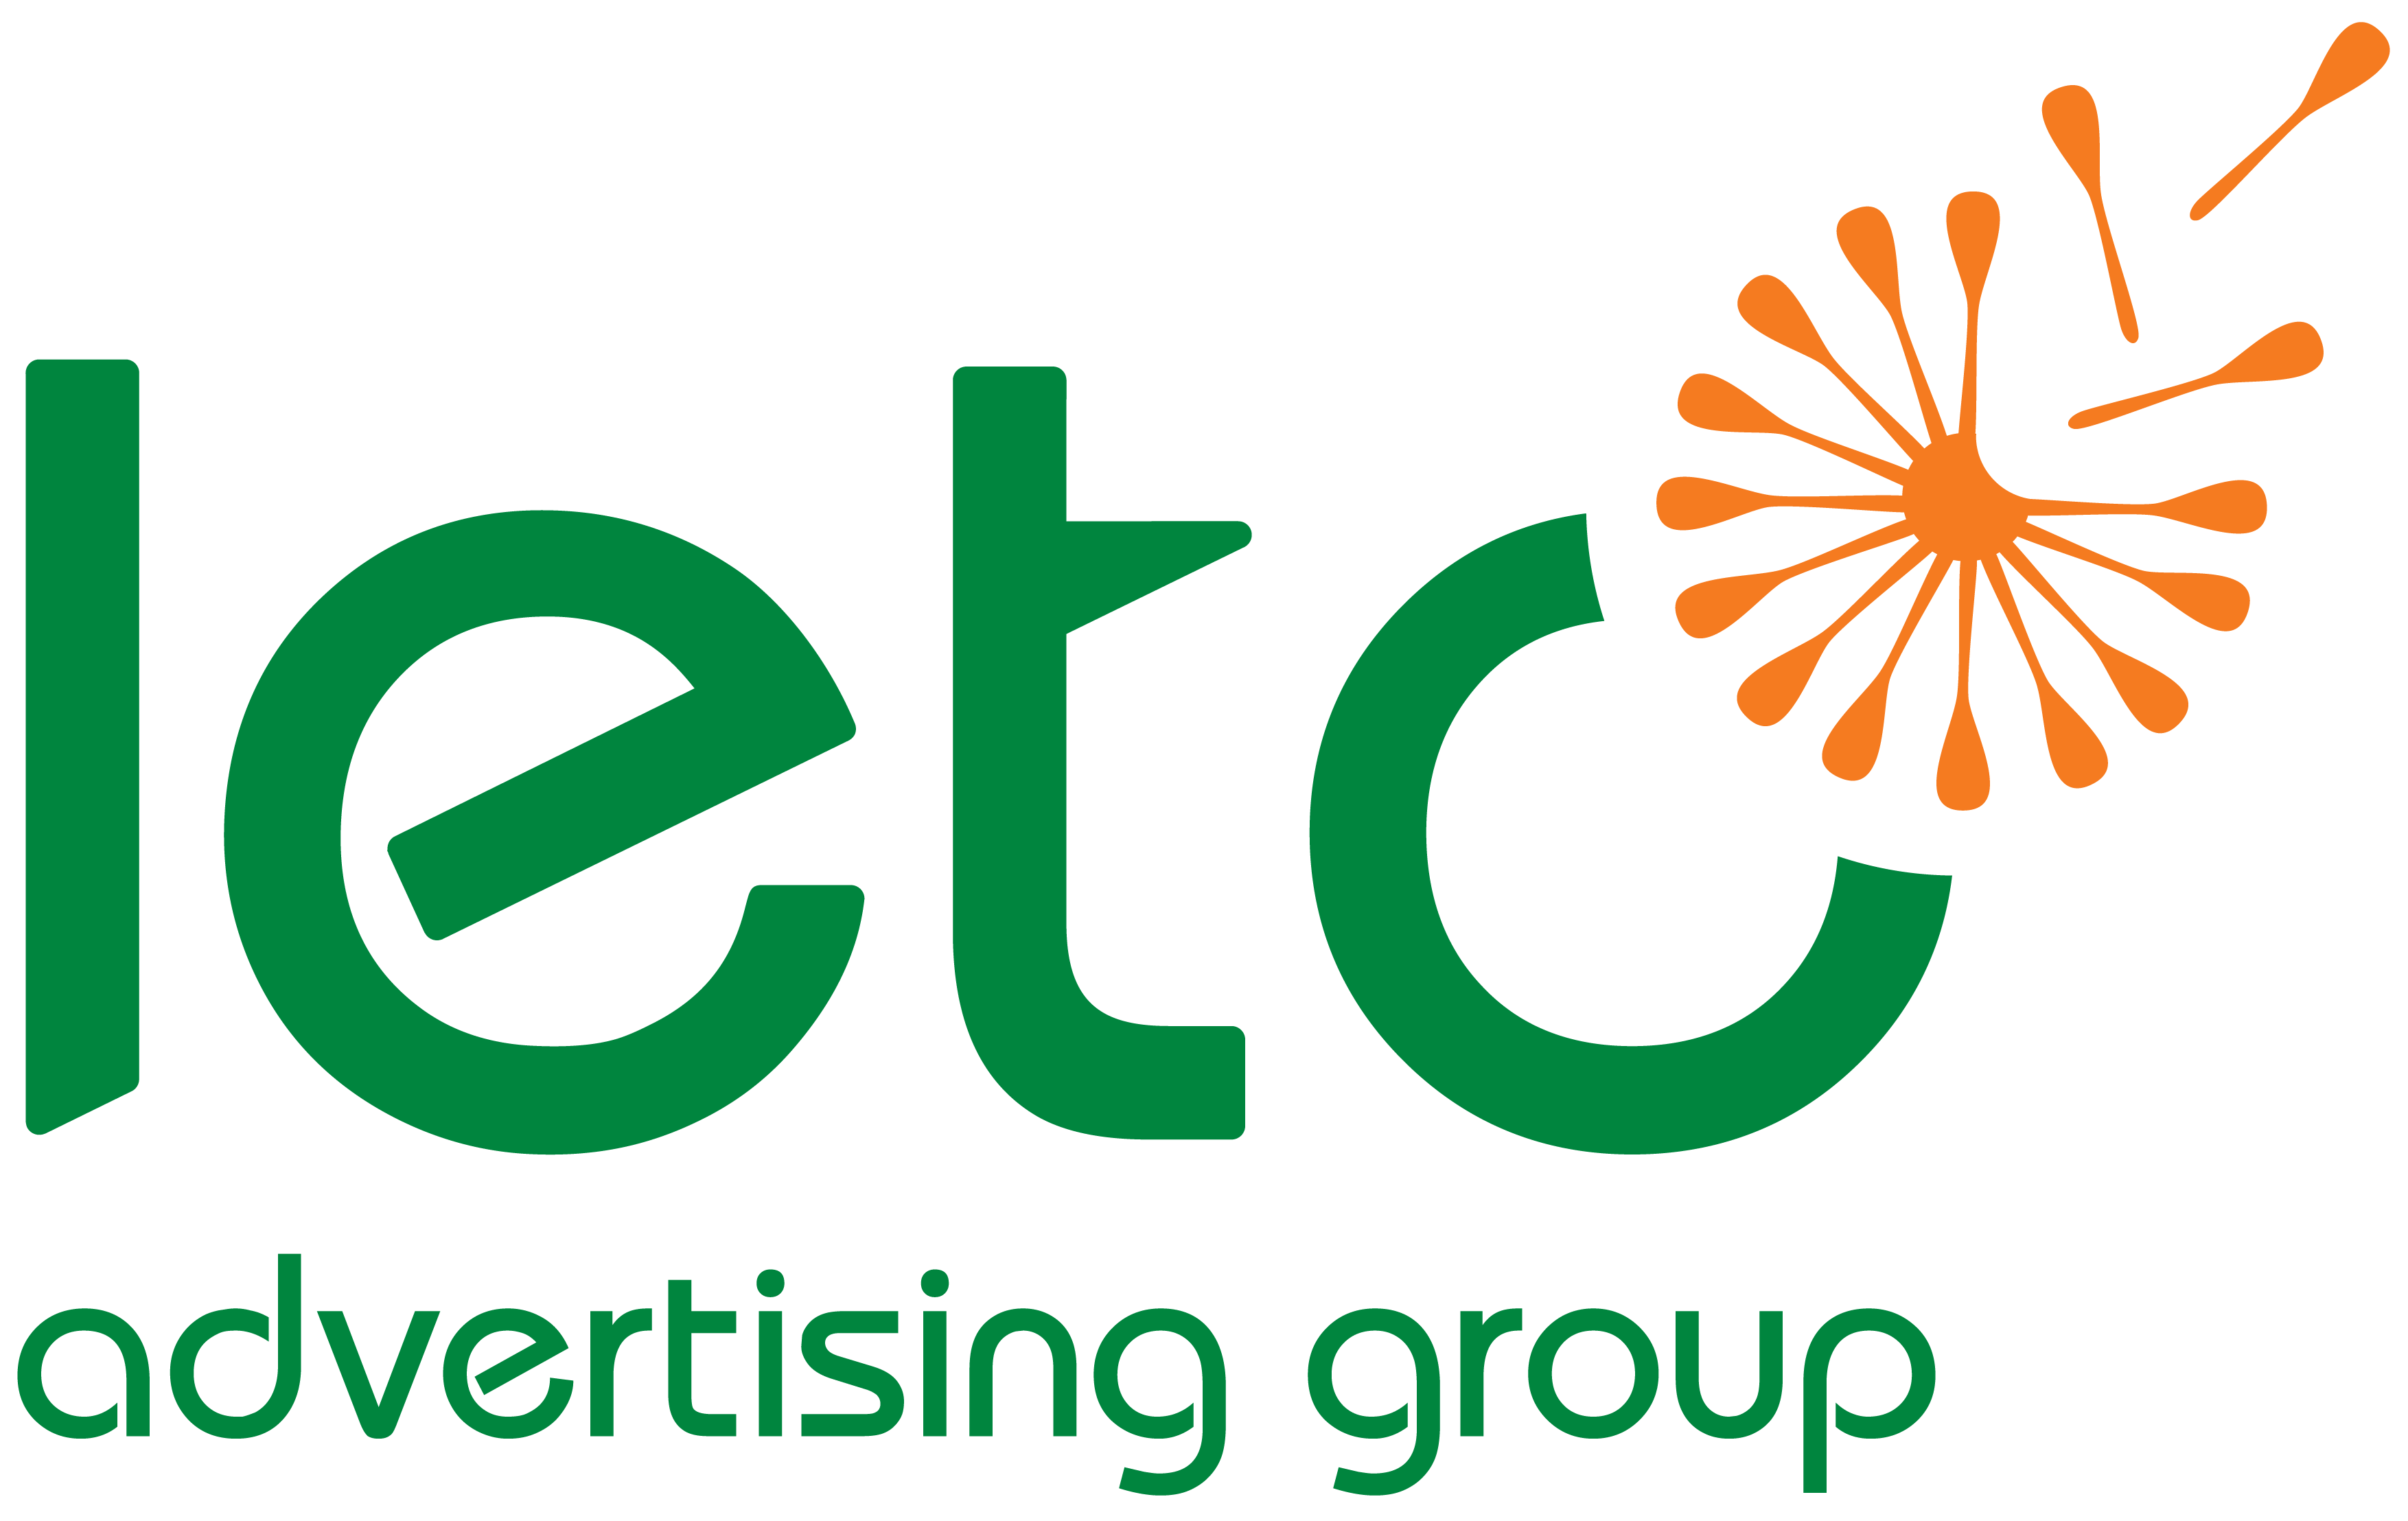 Leto advertising group